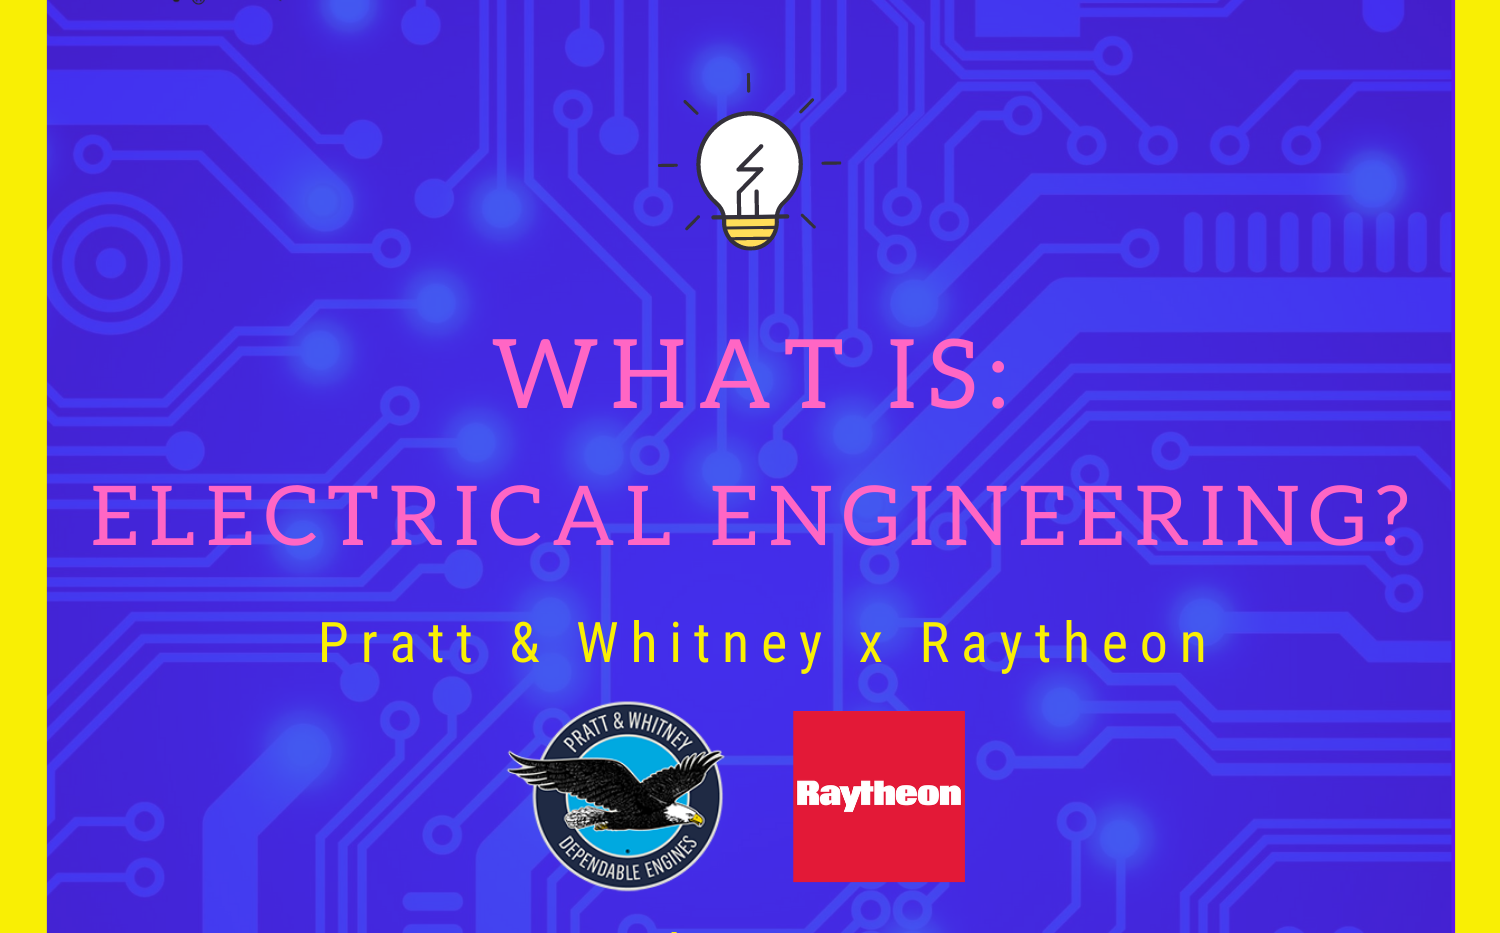 What is Electrical Engineering